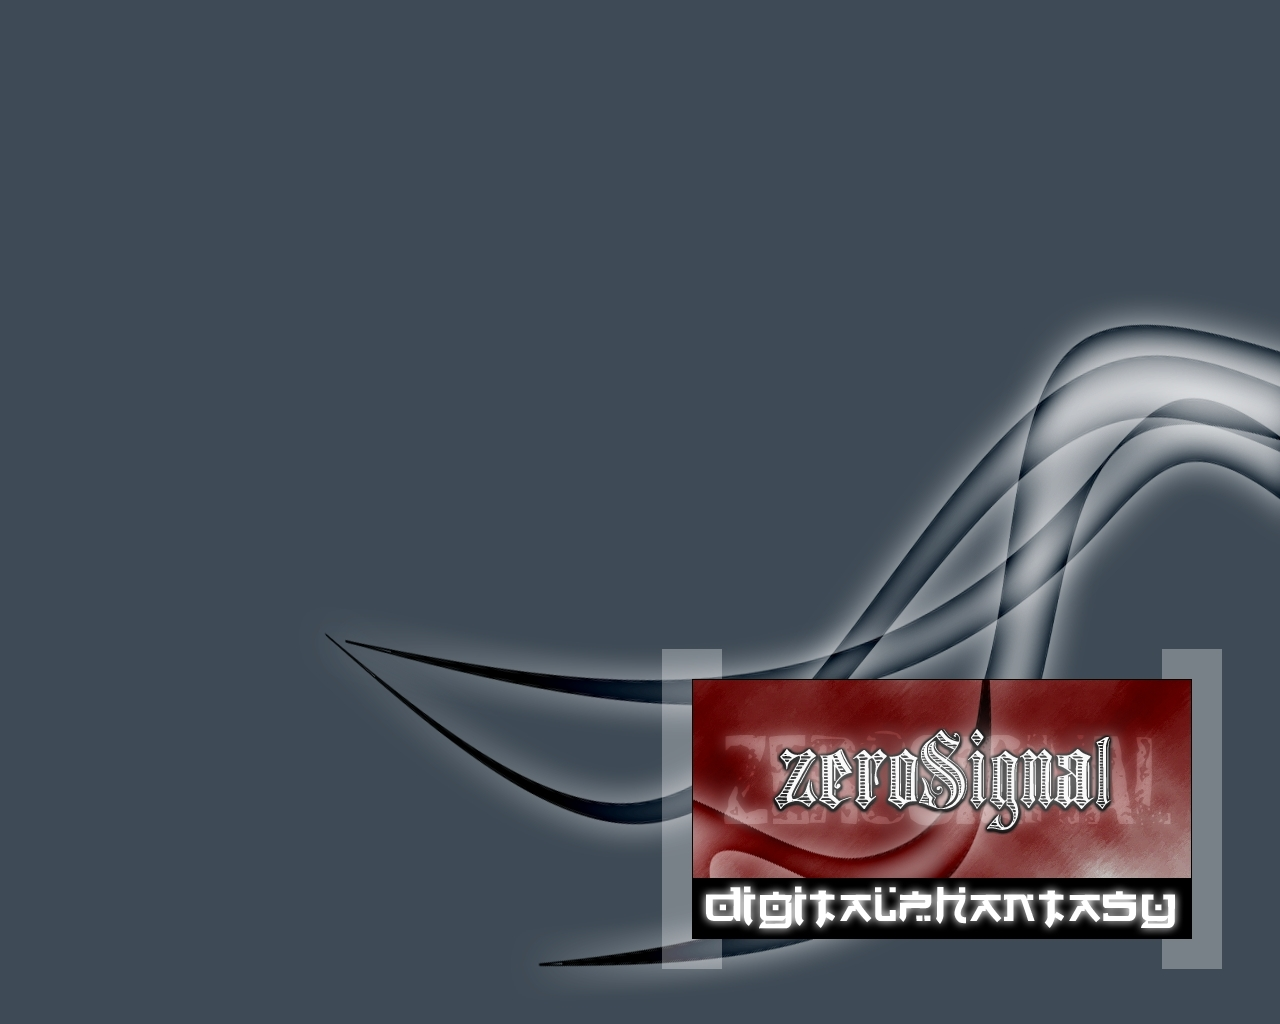 zerosignal abstract zero signal HD Wallpaper